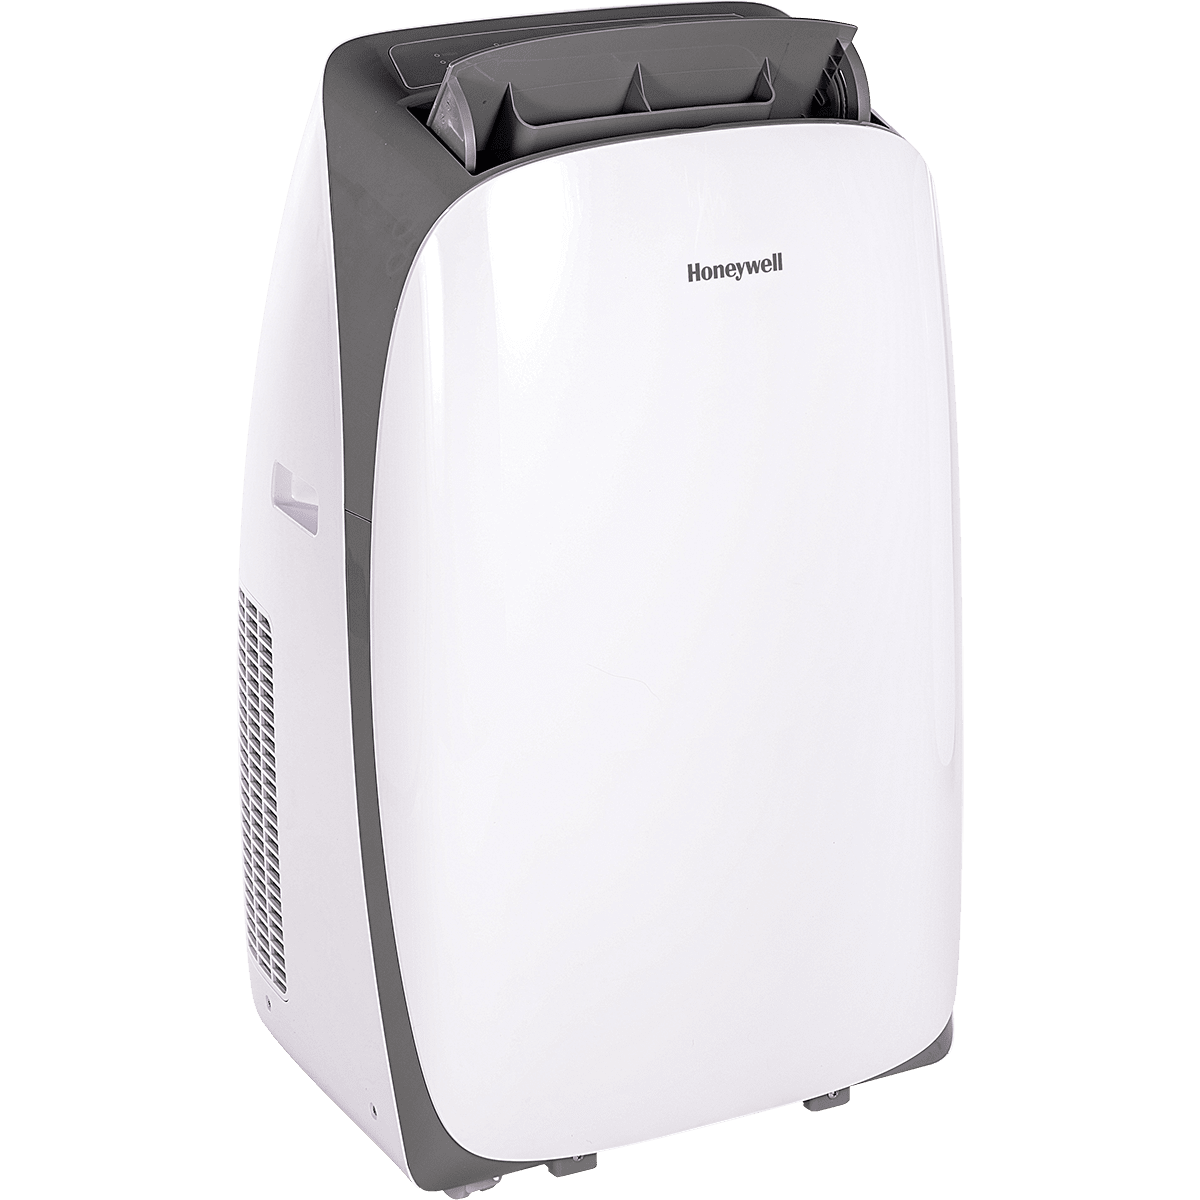 Honeywell HL Series 12,000 BTU Portable Air Conditioner